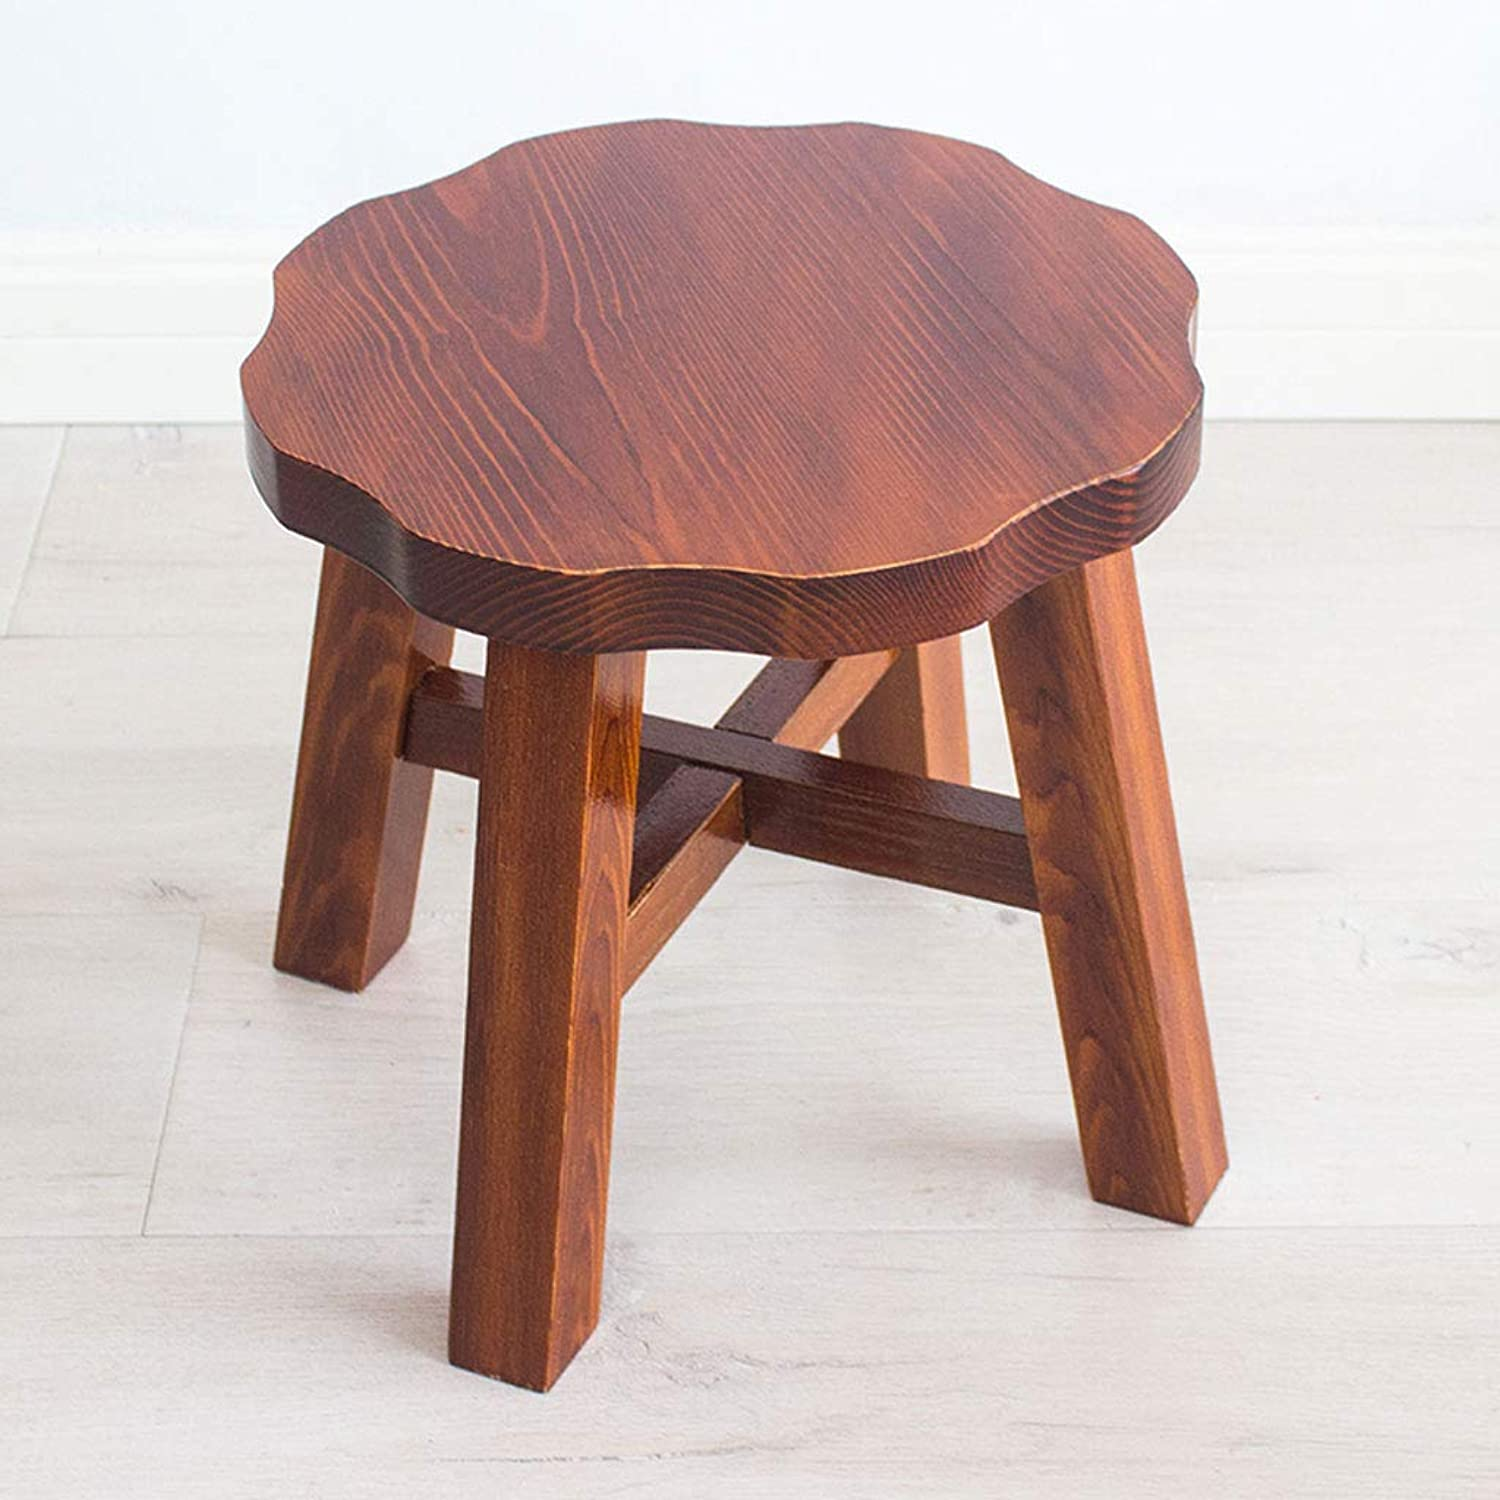 Household Stool Solid Wood Round Solid color Simple Living Room Small Bench V (color   B, Size   L28CMXW28CMXH27CM)